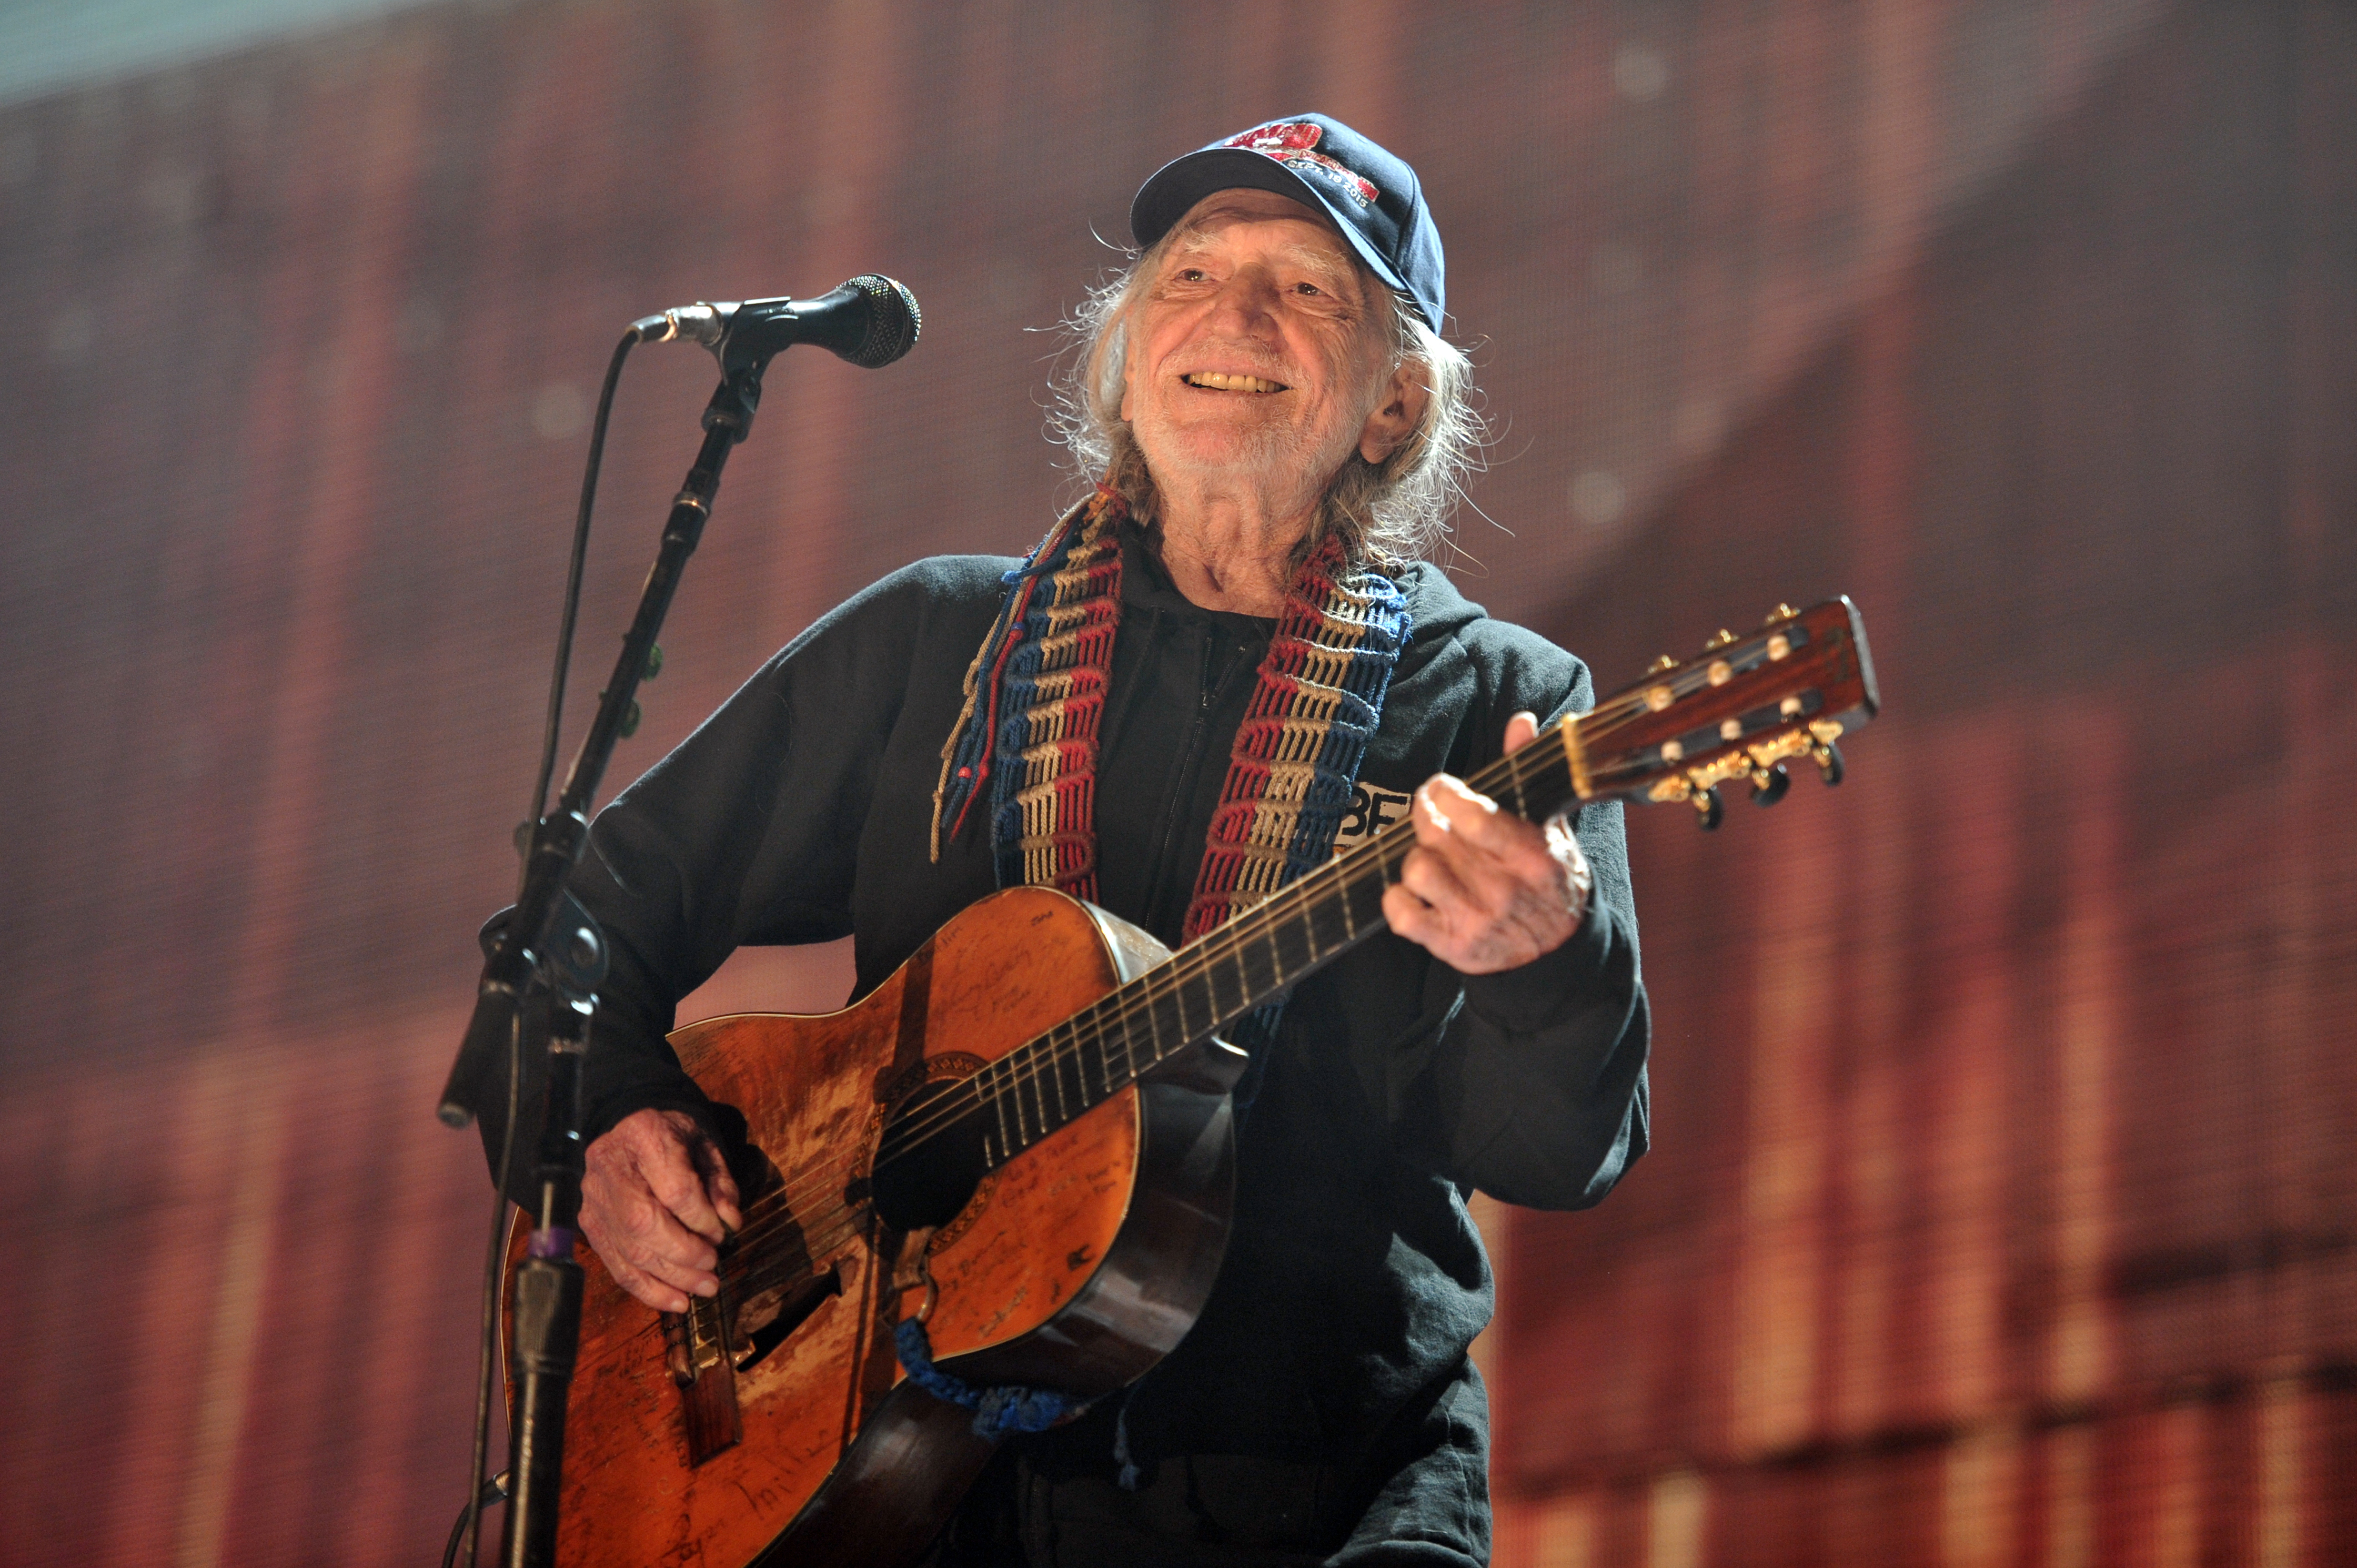 Willie Nelson performs at Farm Aid 30 at FirstMerit Bank Pavilion at Northerly Island on Saturday. | Rob Grabowski/Invision/AP